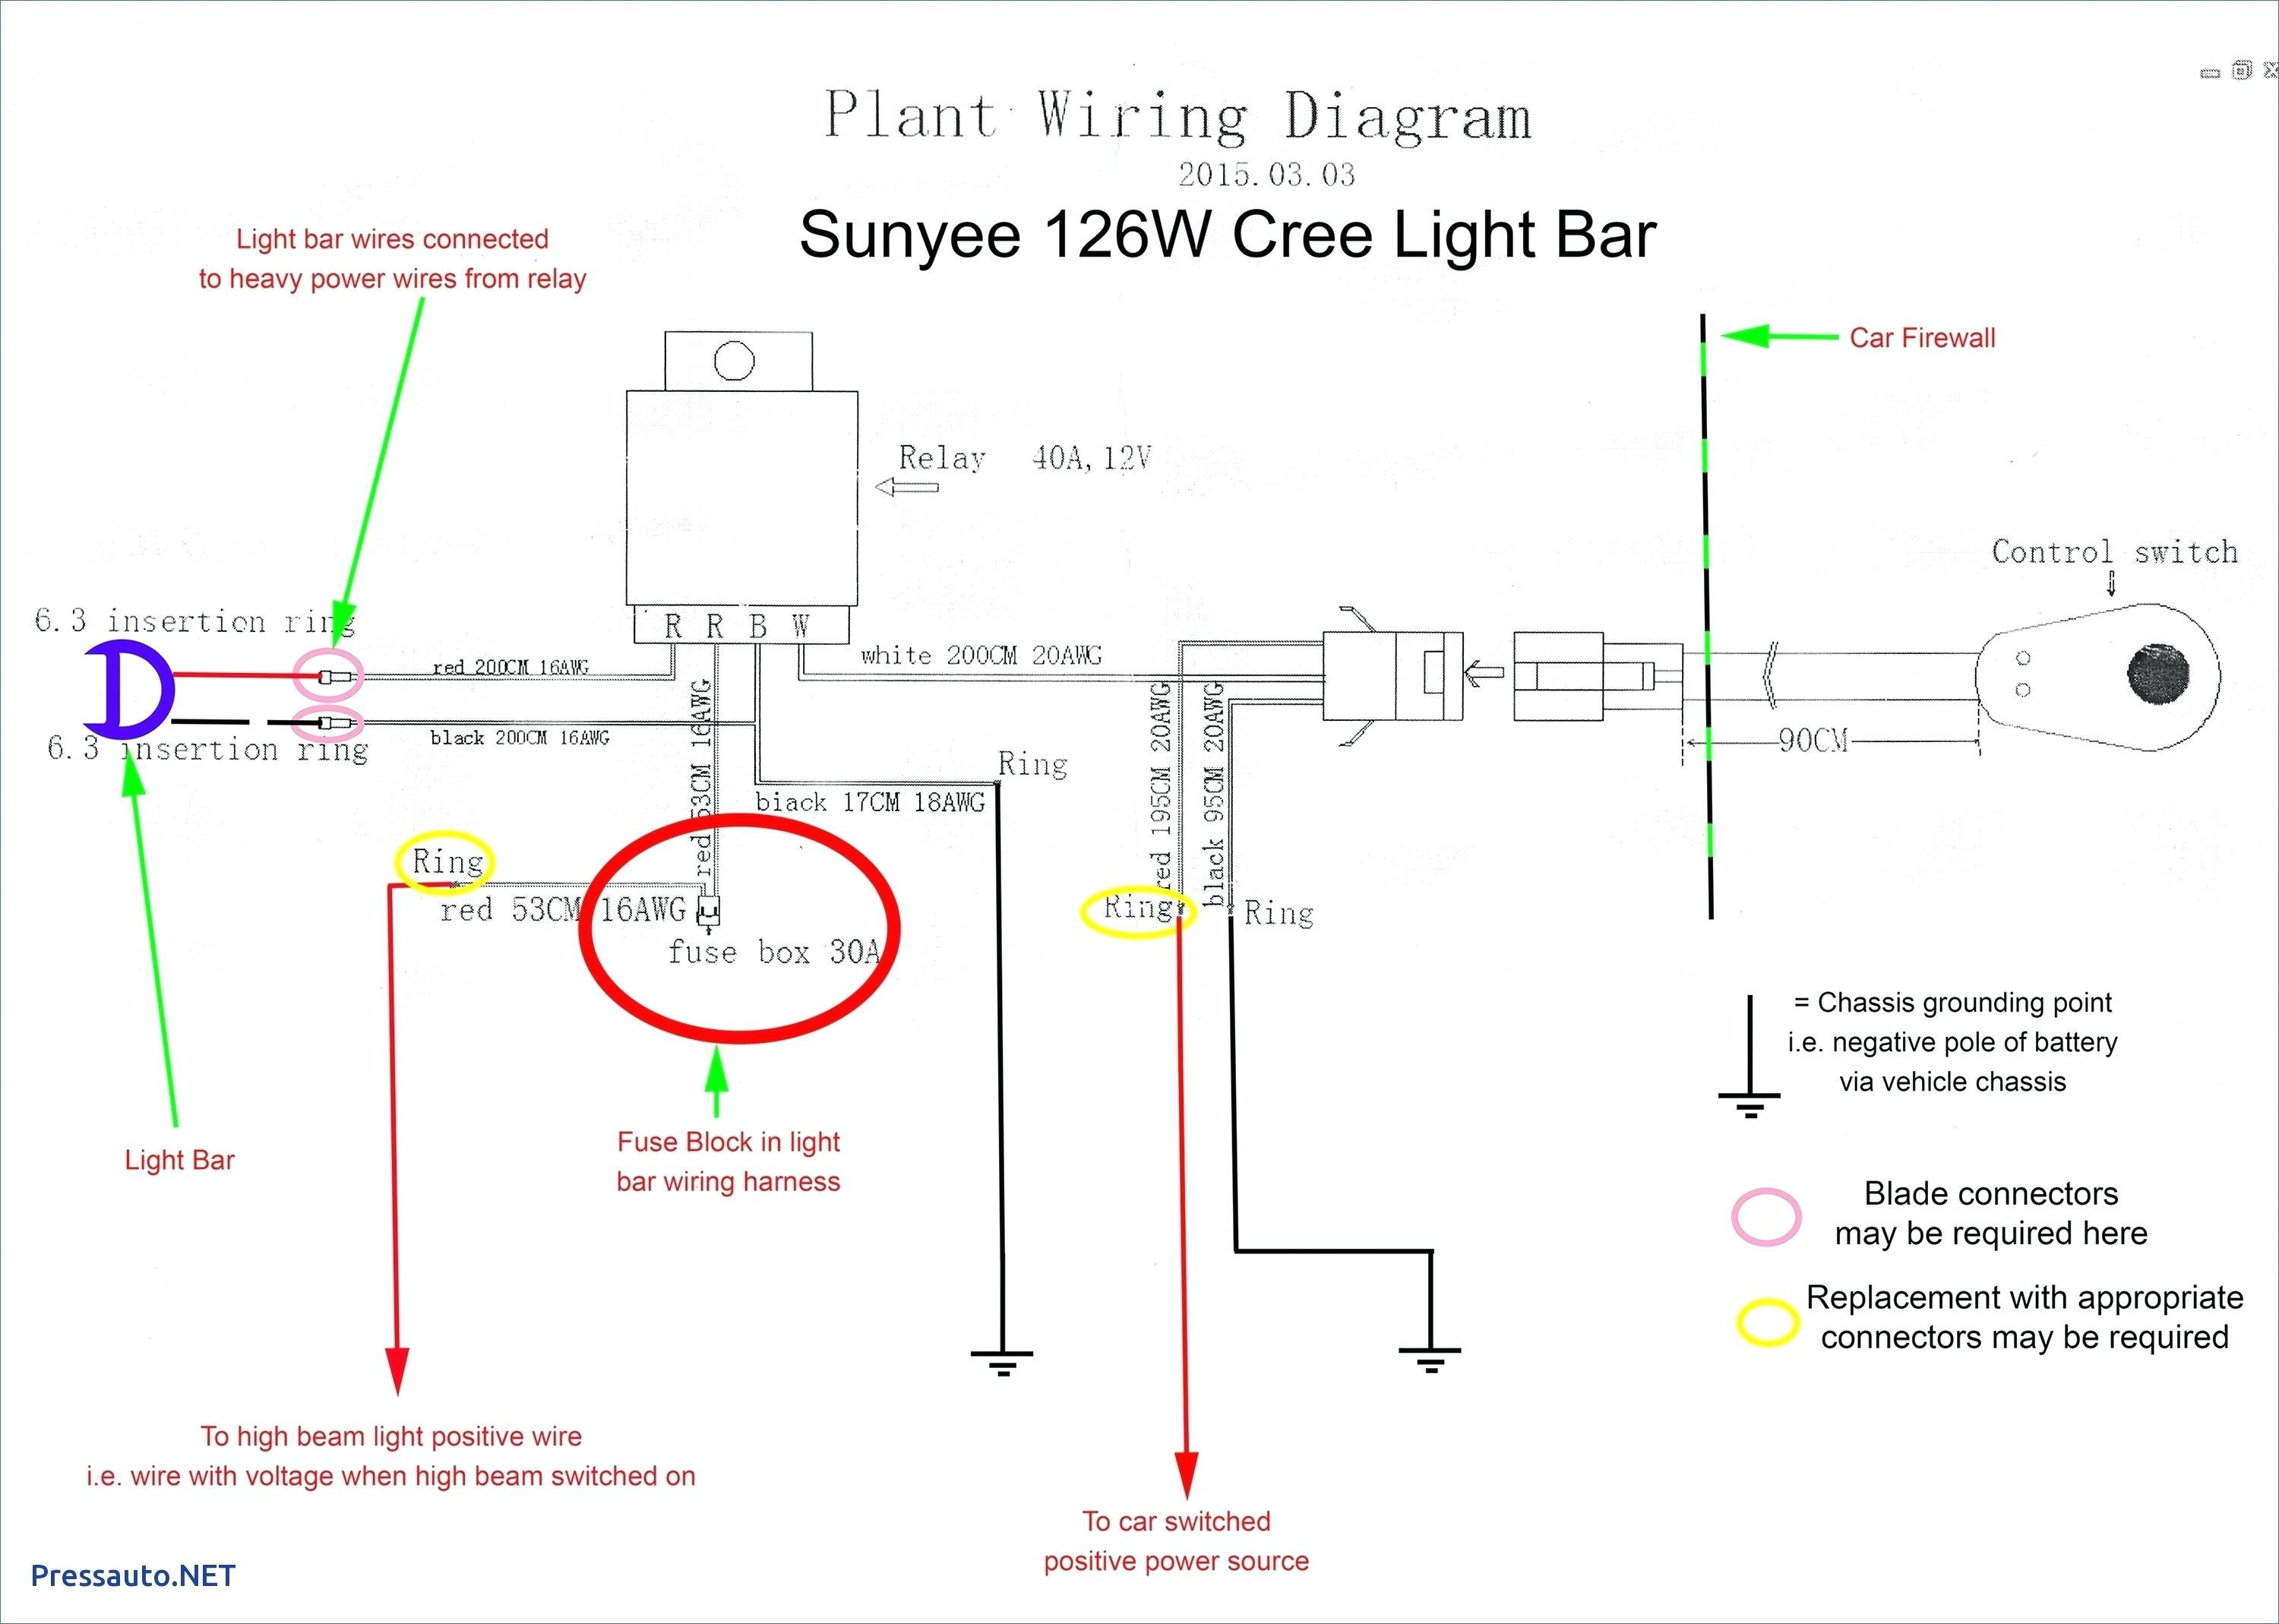 fluorescent light with battery backup wiring diagram Collection-Wiring Diagram Light Fitting Print Wiring Diagram For Fluorescent Light Fitting Save Fluro Light Wiring 19-g